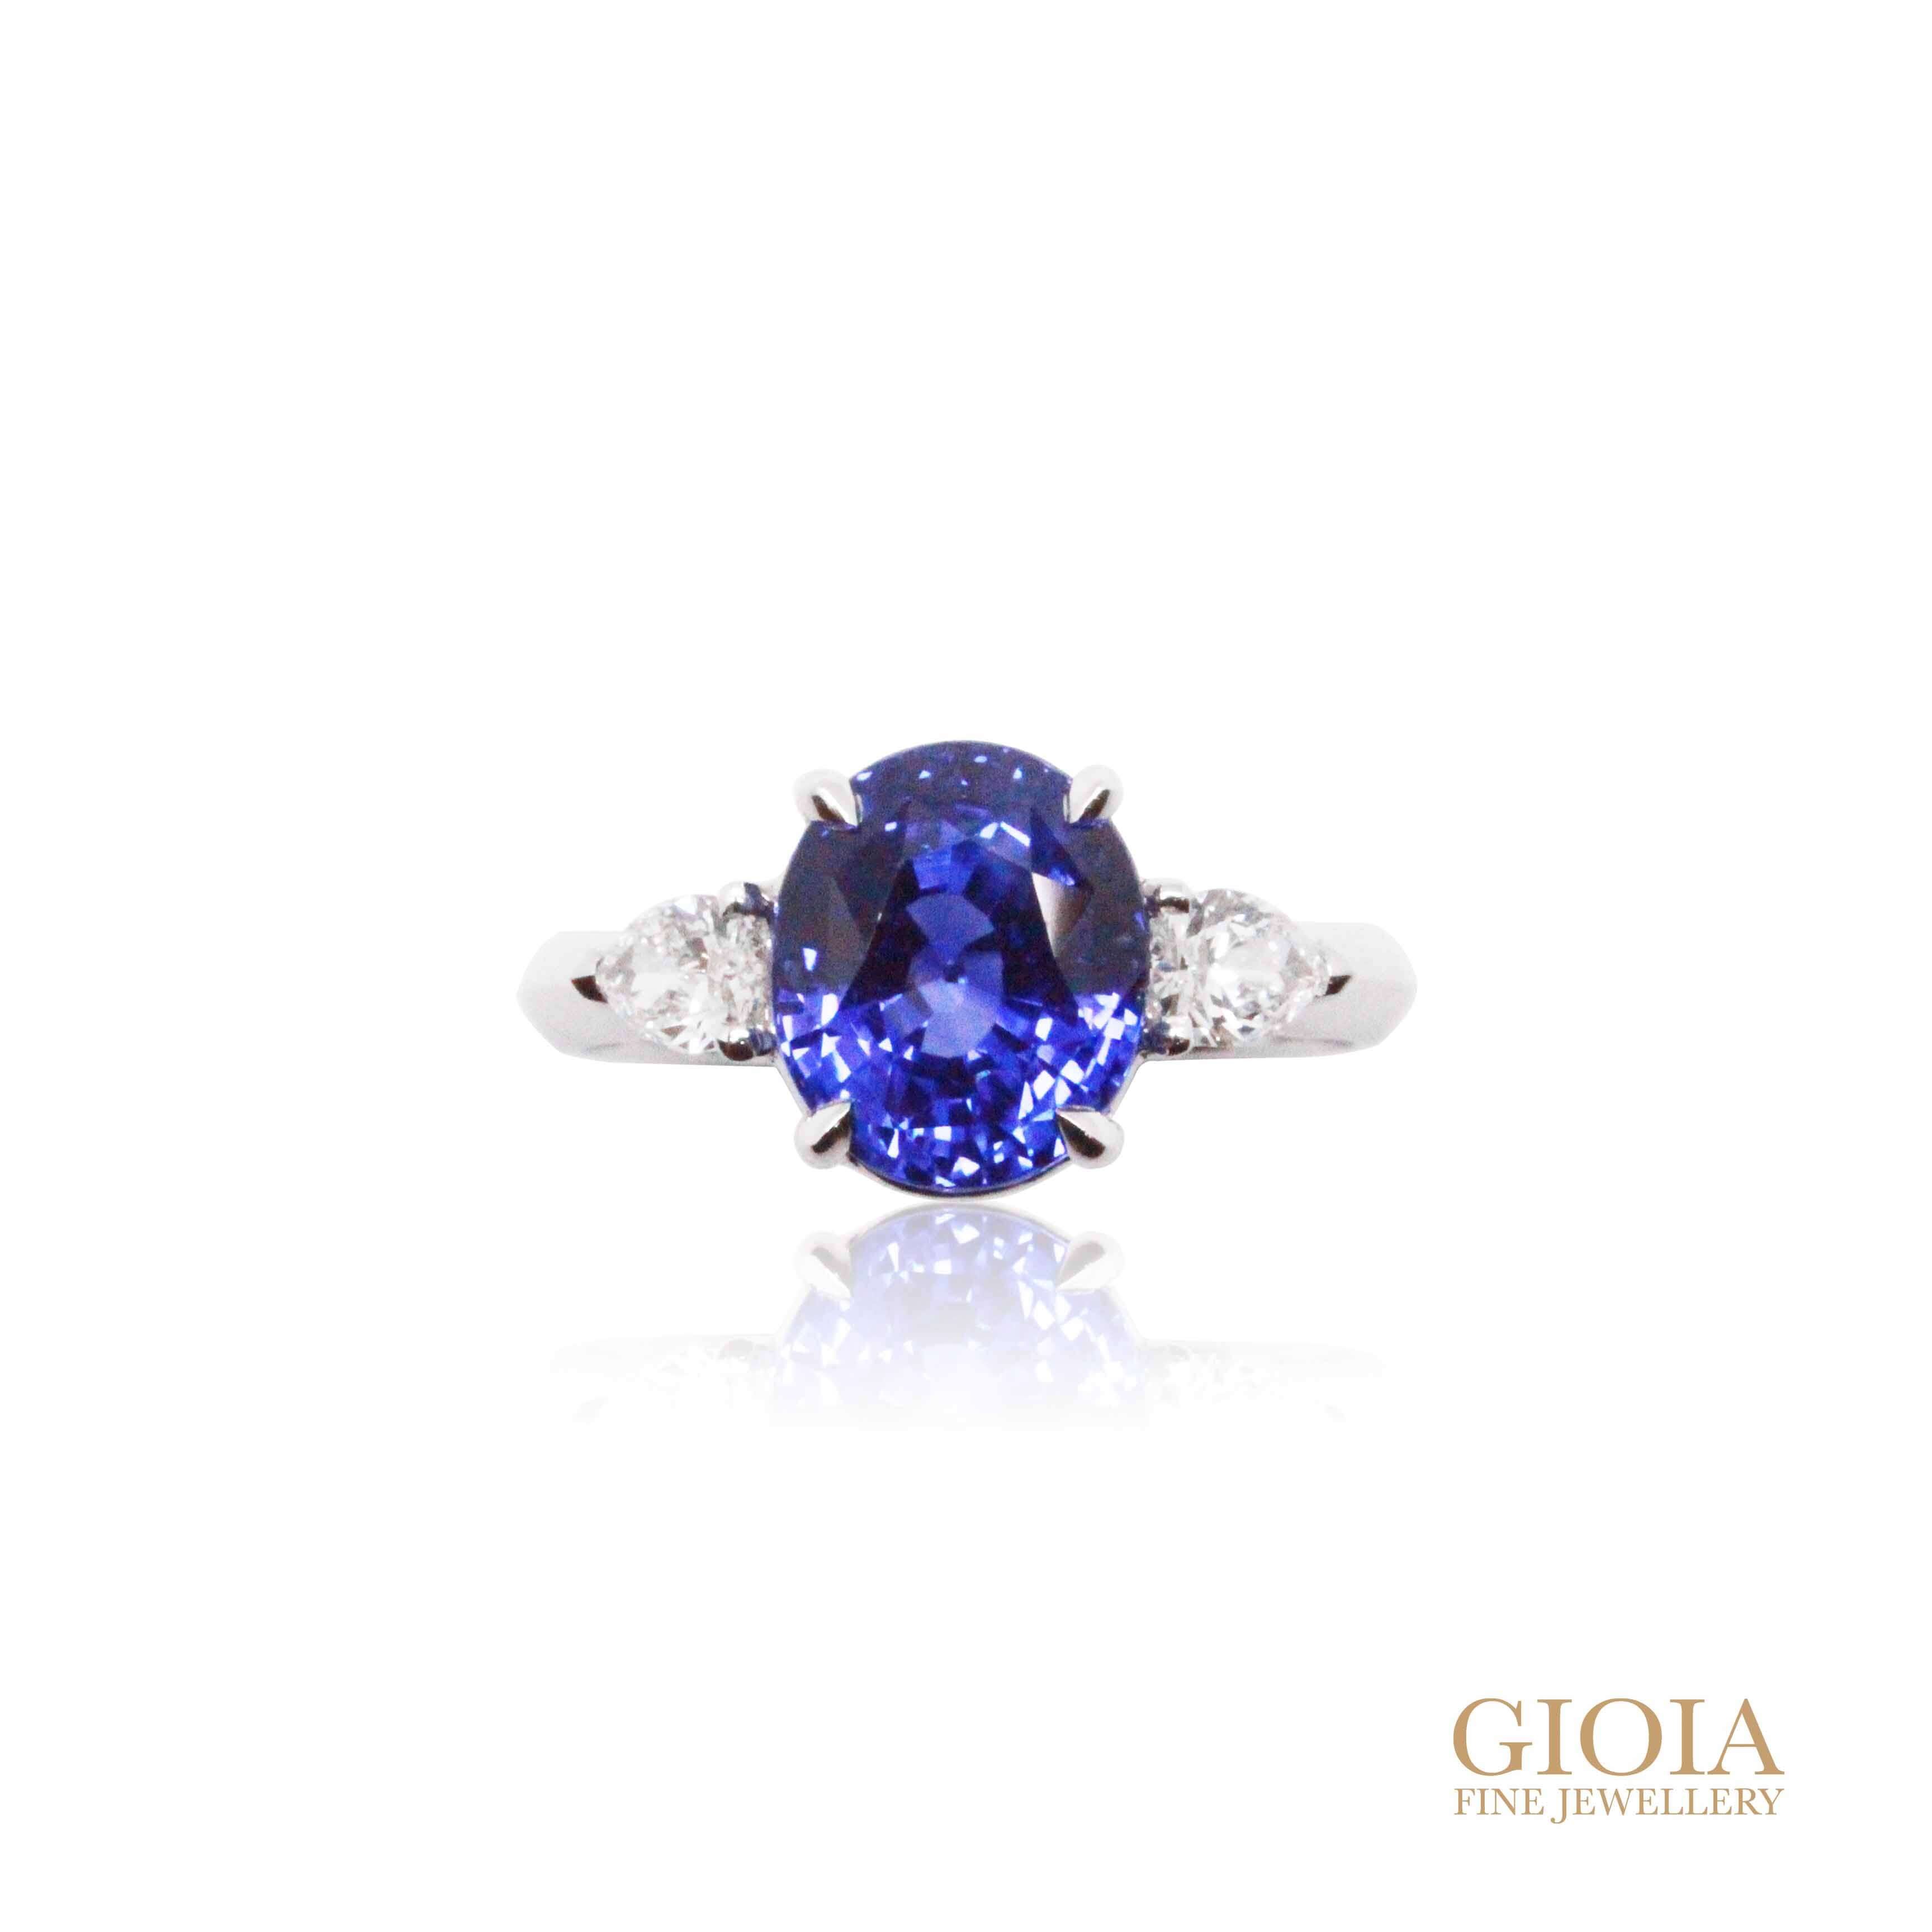 Blue Sapphire Proposal Ring - Unheated Sapphire with Pear shaped Diamond GIOIA Fine Jewellery